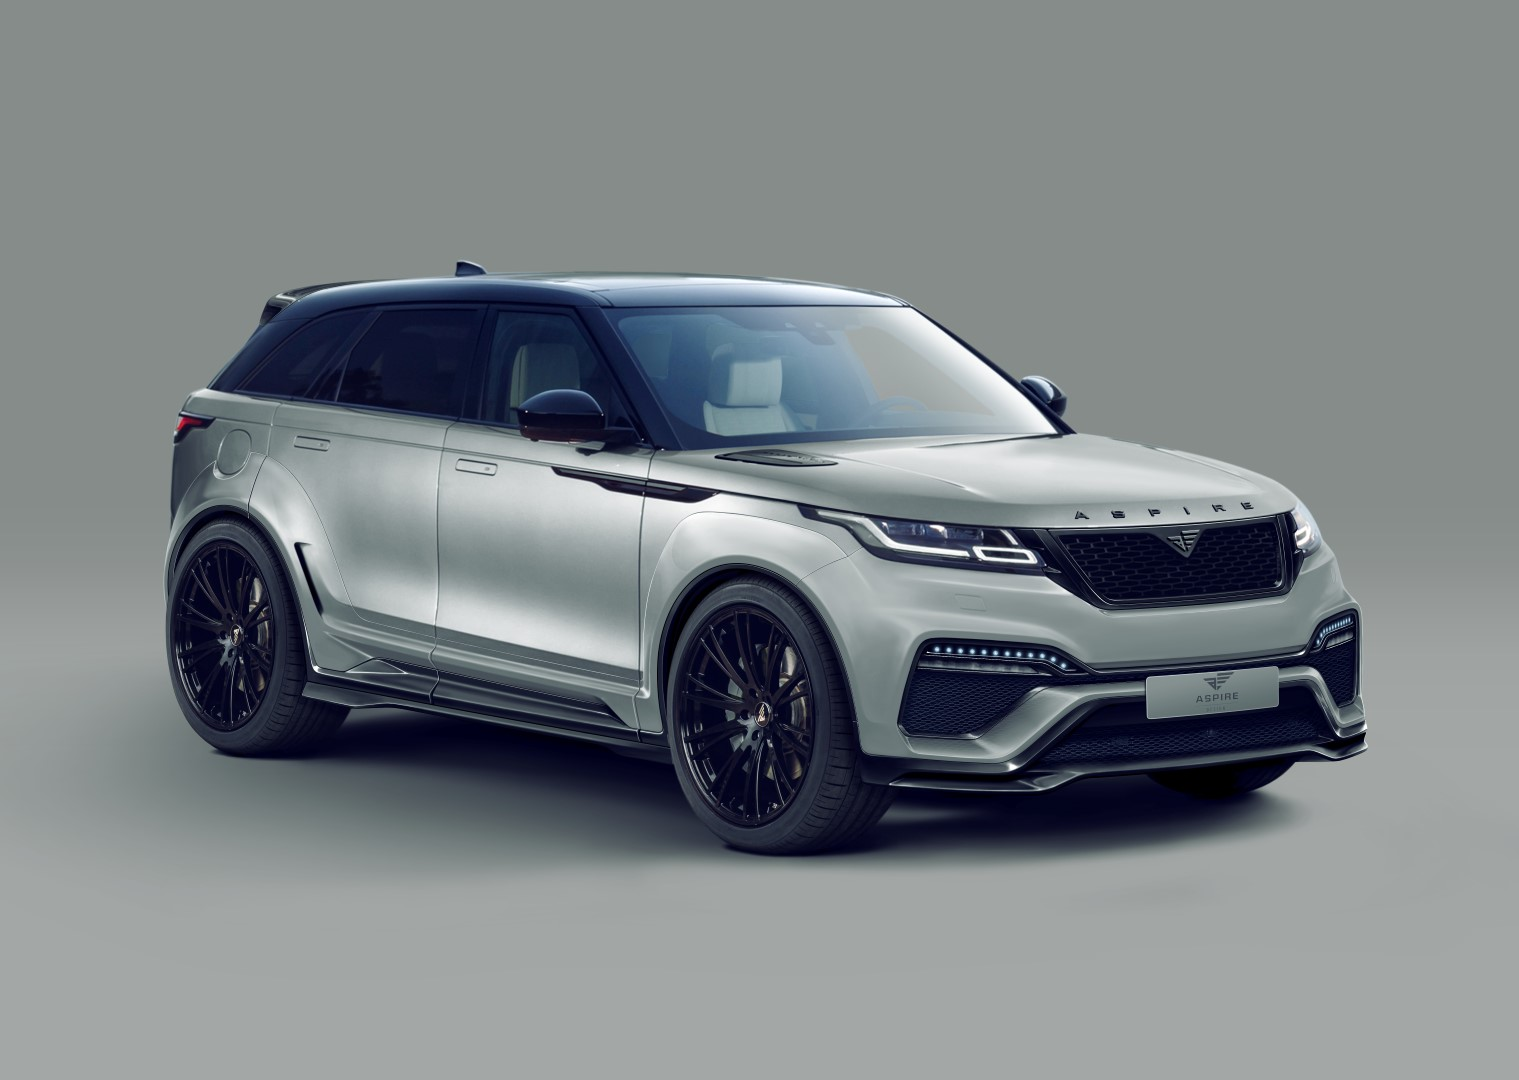 Wide Body Range Rover Velar Thanks To Aspire Design